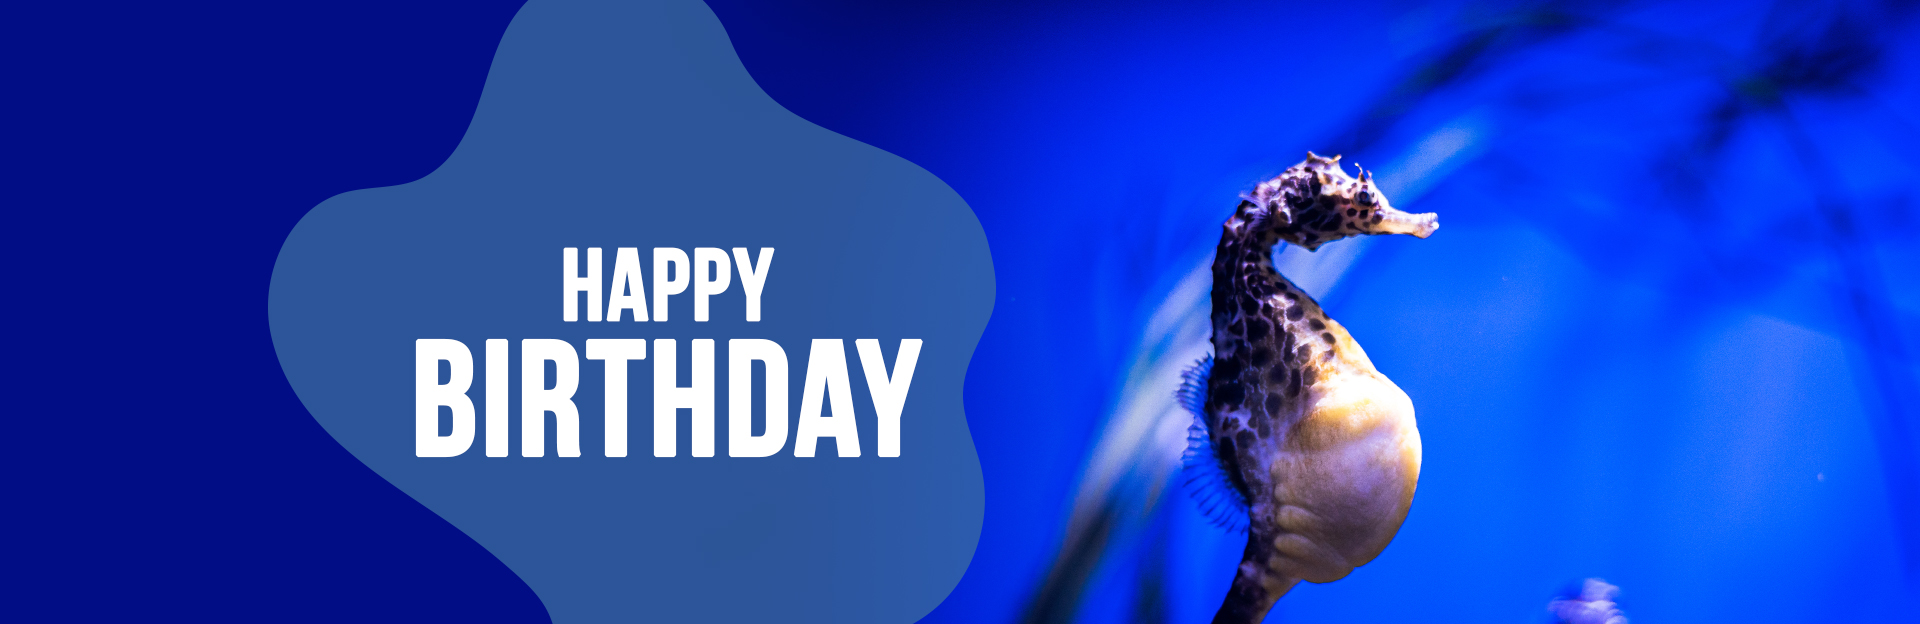 Header image for Birthday Parties page